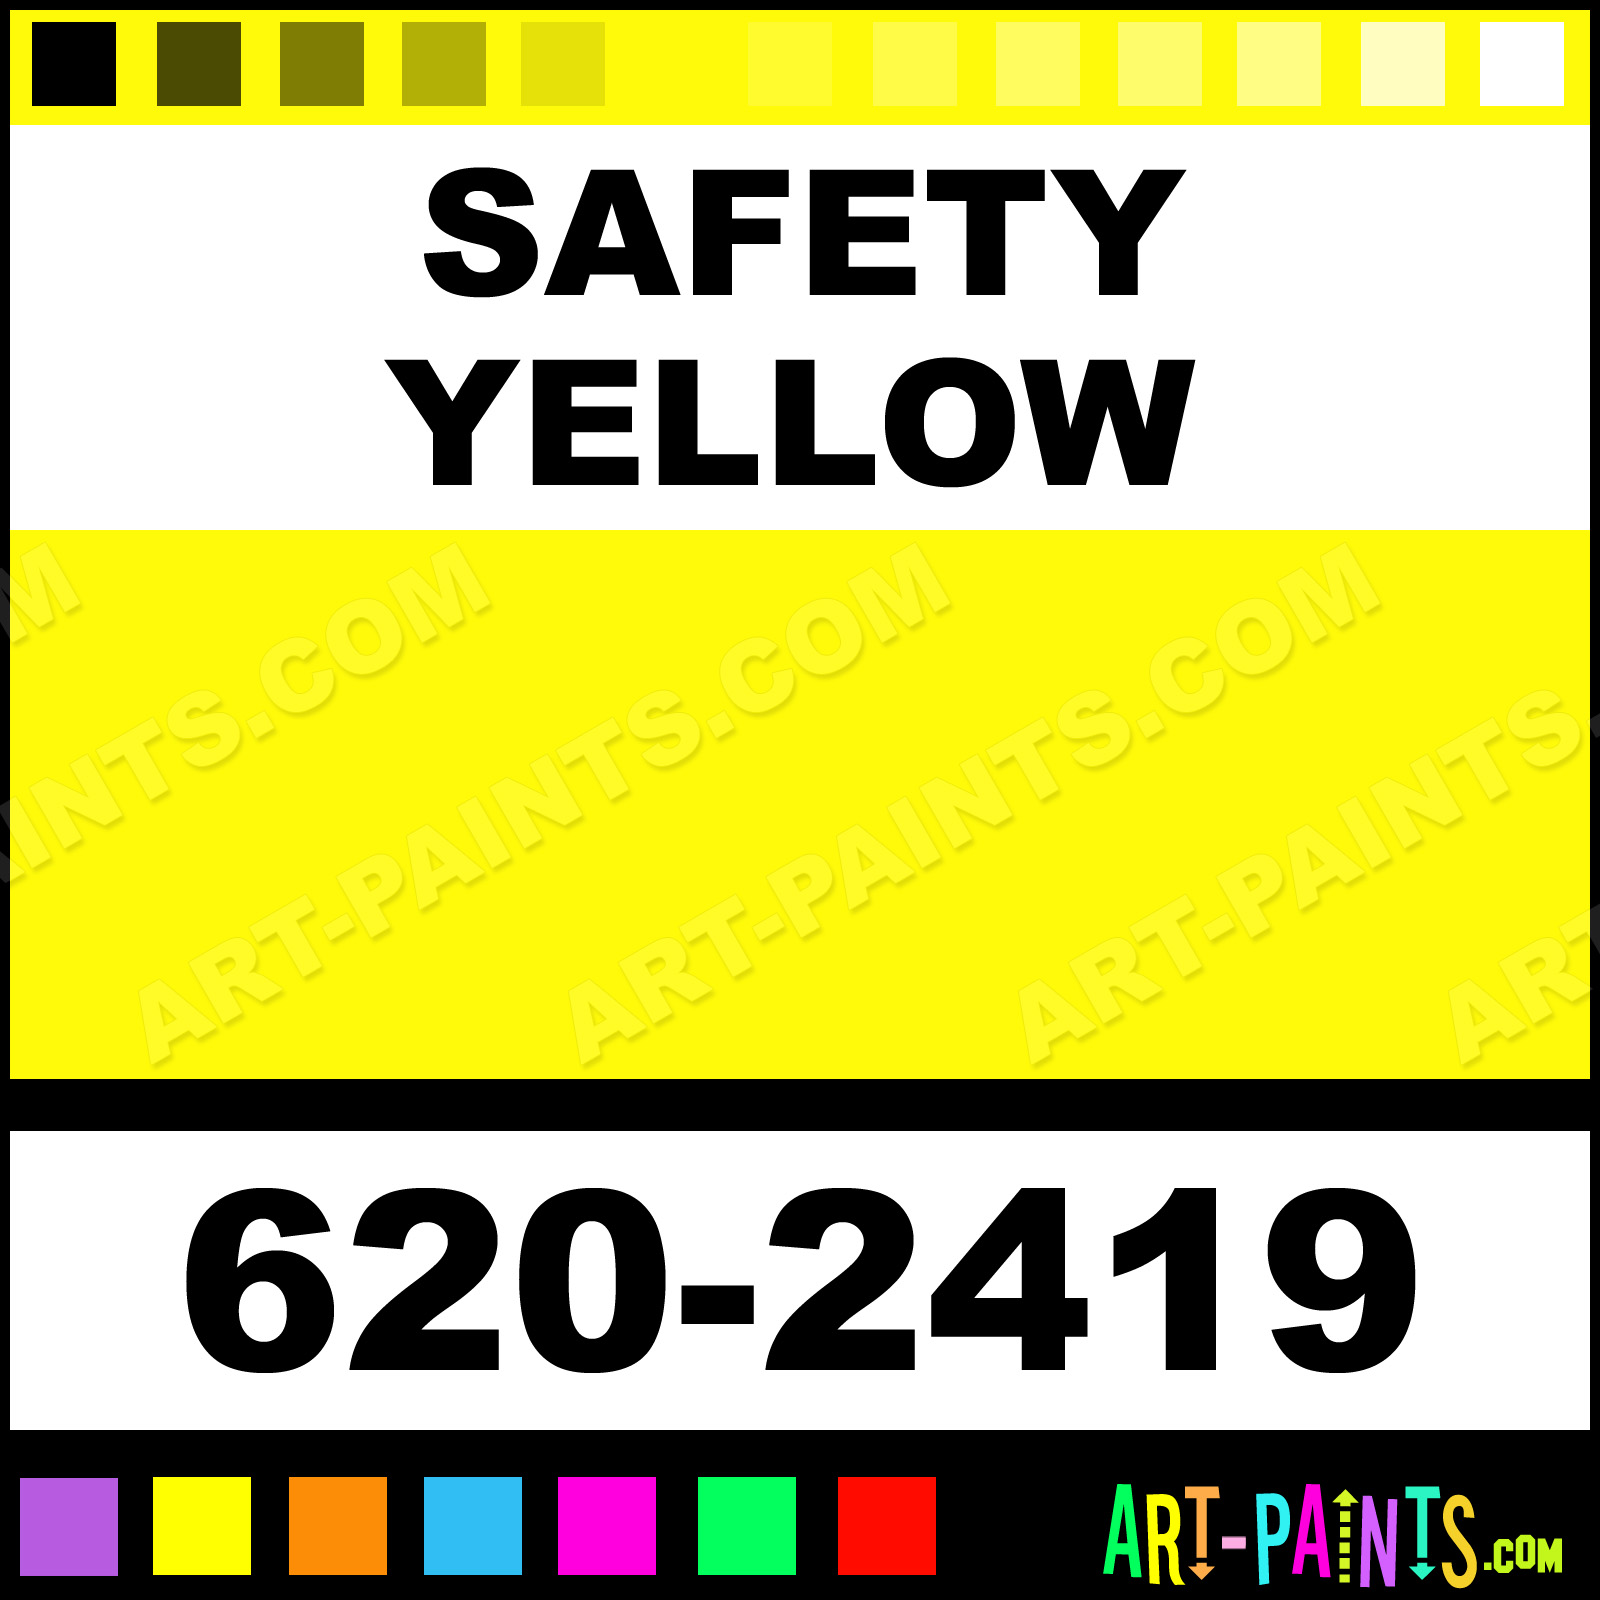 Safety yellow mro spray paints 620 2419 safety yellow for Spray paint safety